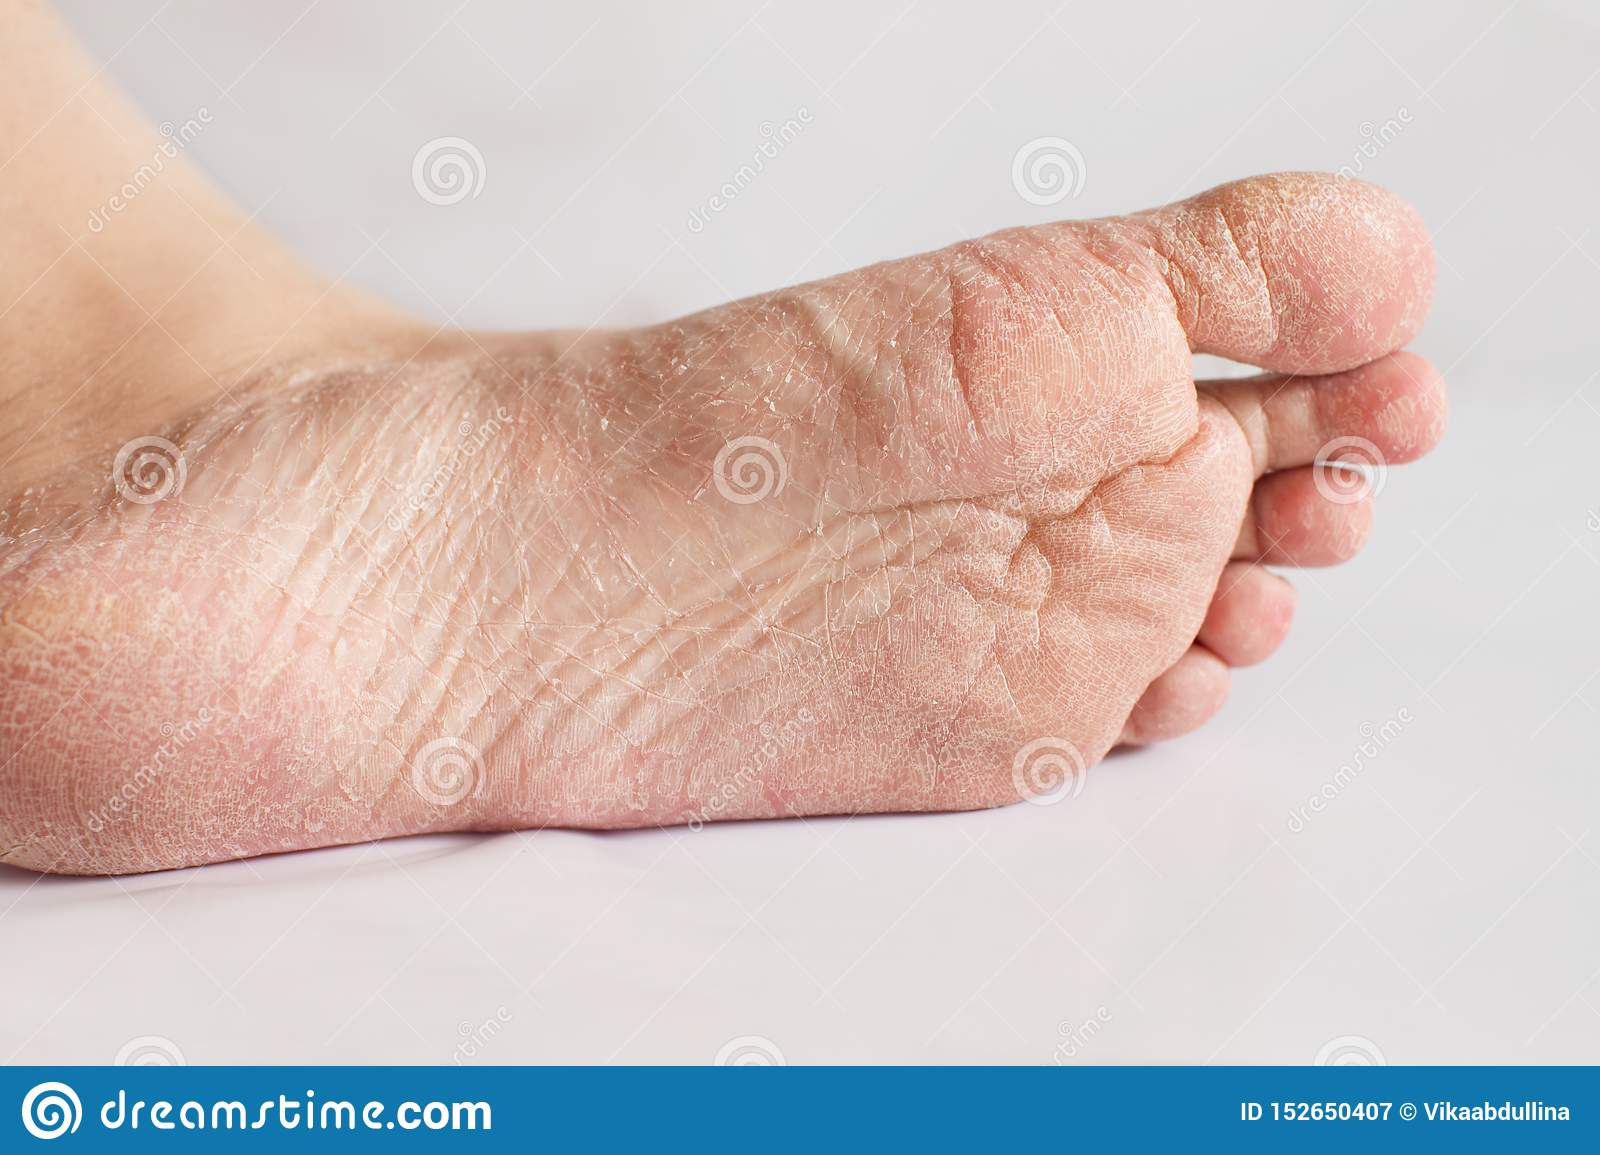 Close Up Cracked Heels. Health Problems